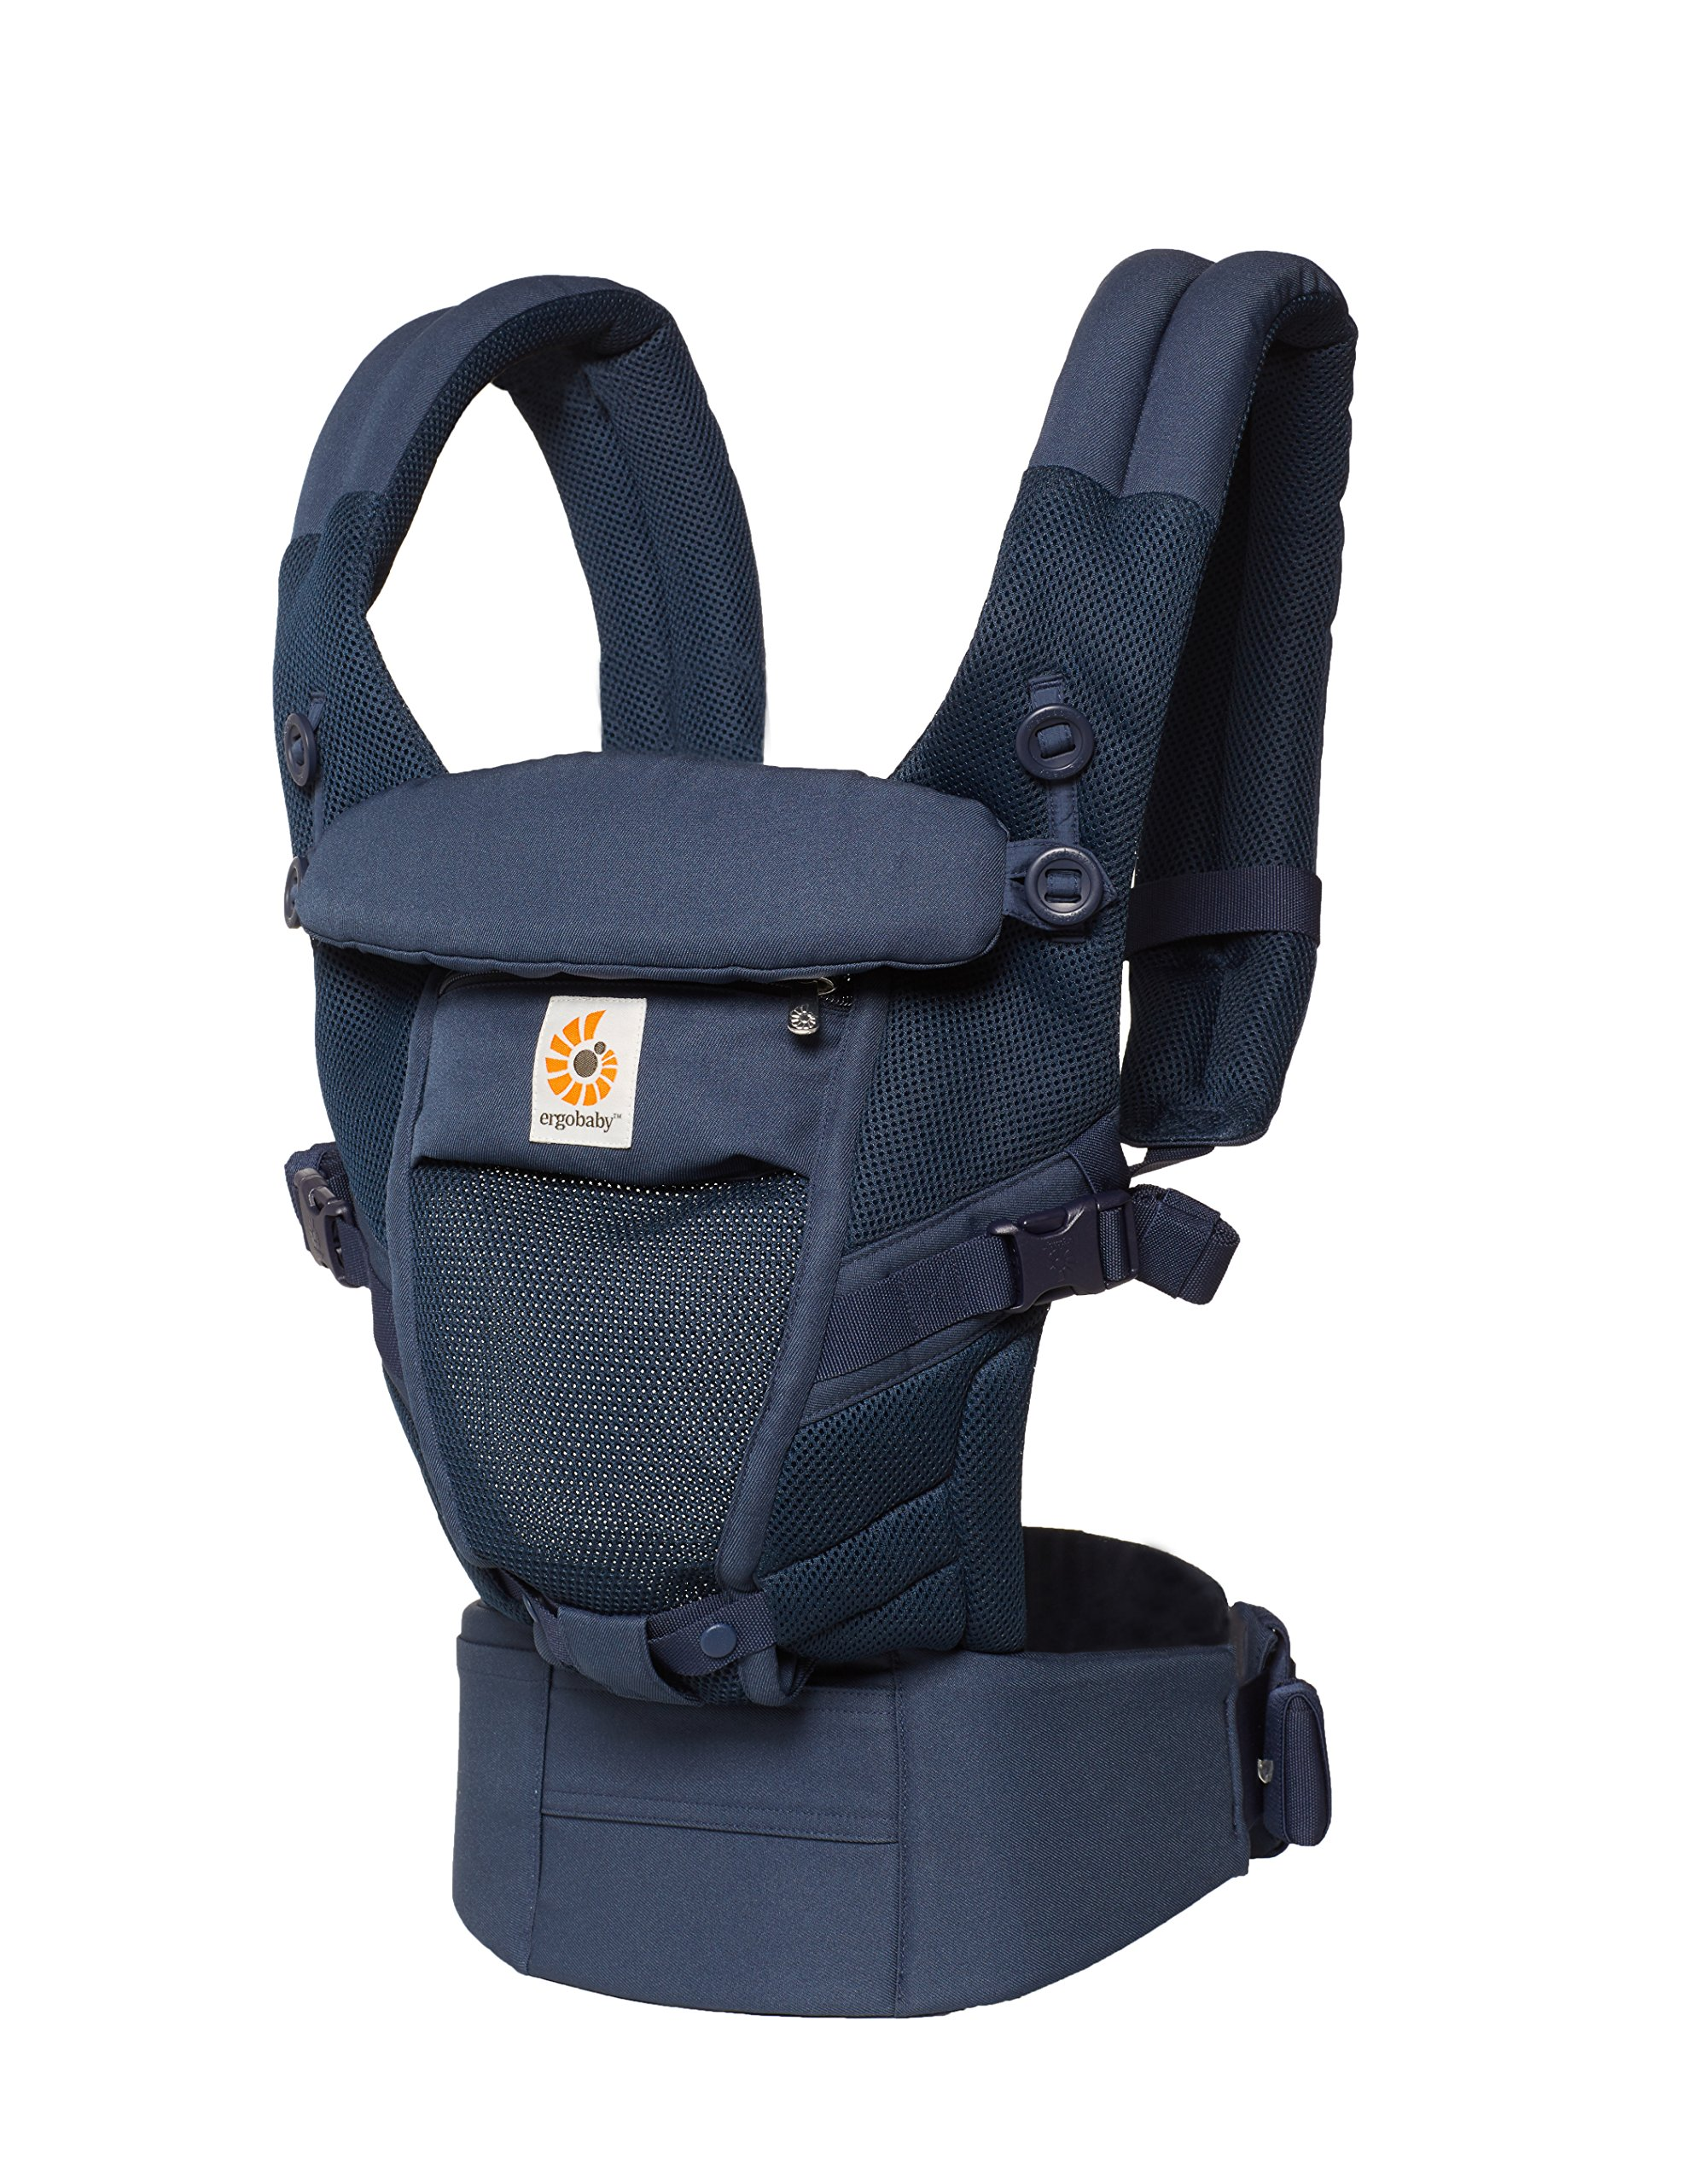 Ergobaby Baby Carrier for Newborn to Toddler up to 20kg, Adapt 3-Position Cool Air Mesh, Deep Blue Ergobaby Ergonomic bucket seat gradually adjusts to a growing baby from newborn to toddler (3.2 -20kg) No infant insert required 3 ergonomic carry positions: front-inward, hip and back 5